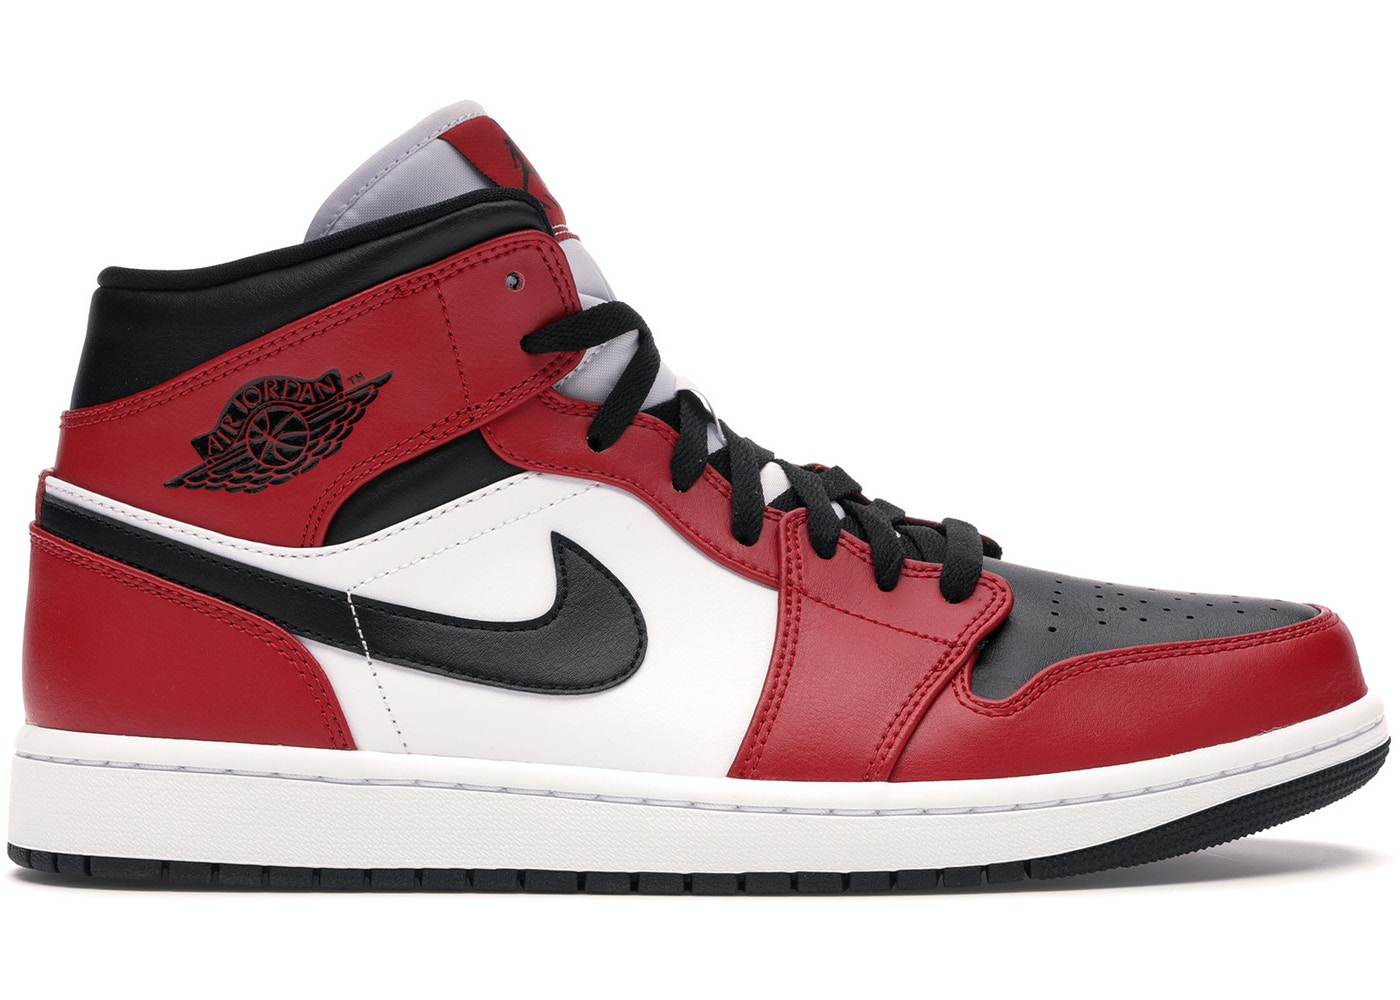 jordan 1 mid chicago toe 554724 069 jordan 1 mid chicago toe